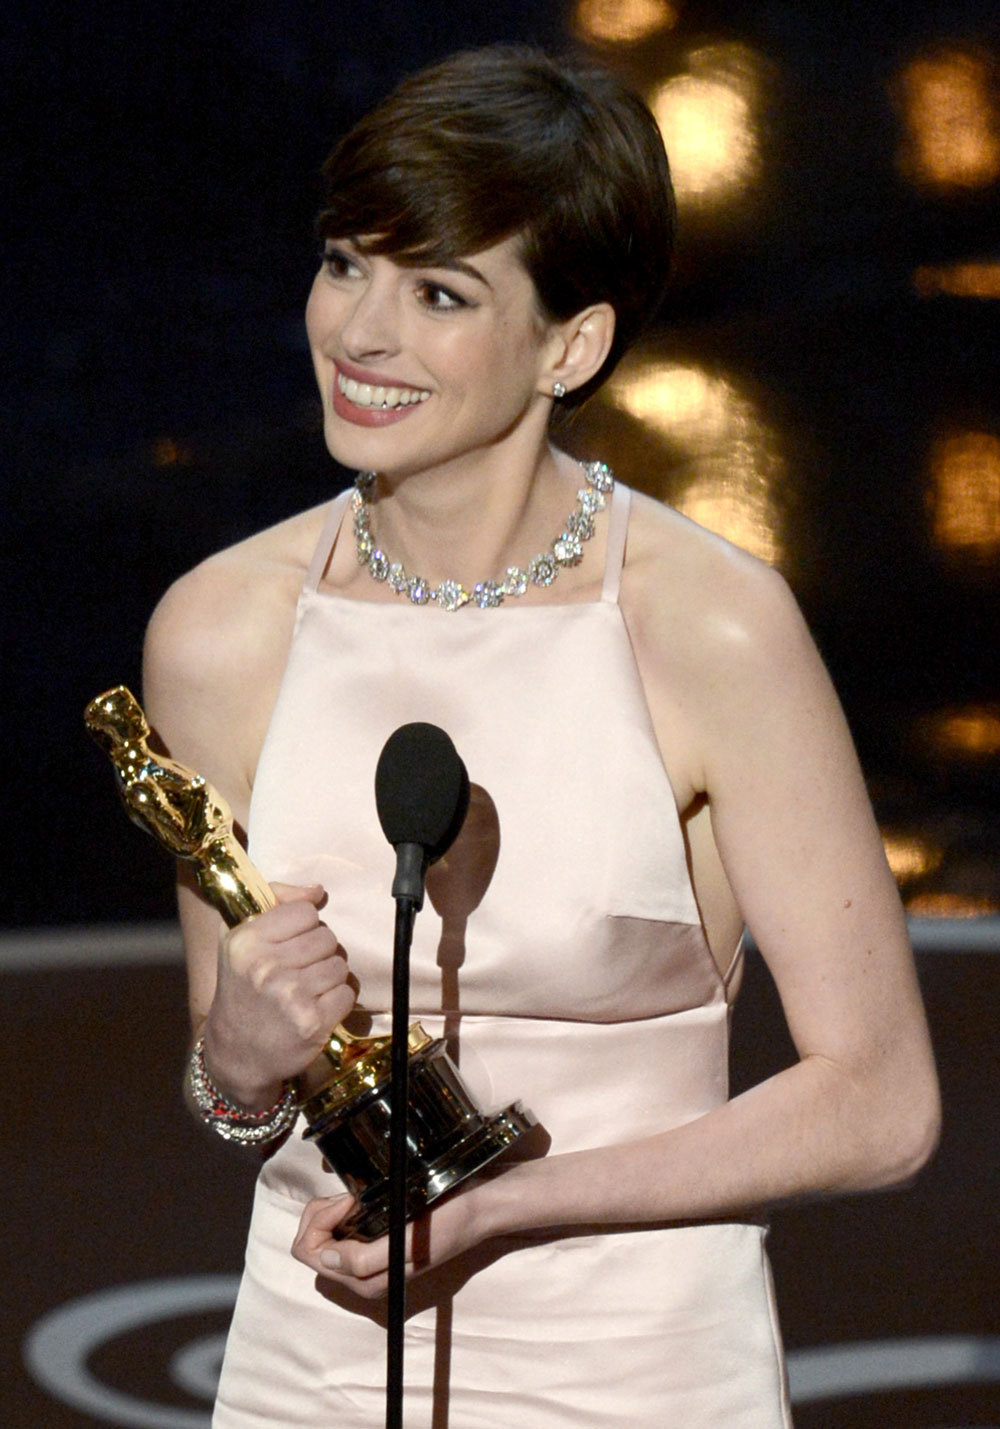 nparts:  Anne Hathaway accepts the Best Supporting Actress award for Les Miserables. (Photo by Kevin Winter/Getty Images) More: http://natpo.st/XzvSrs